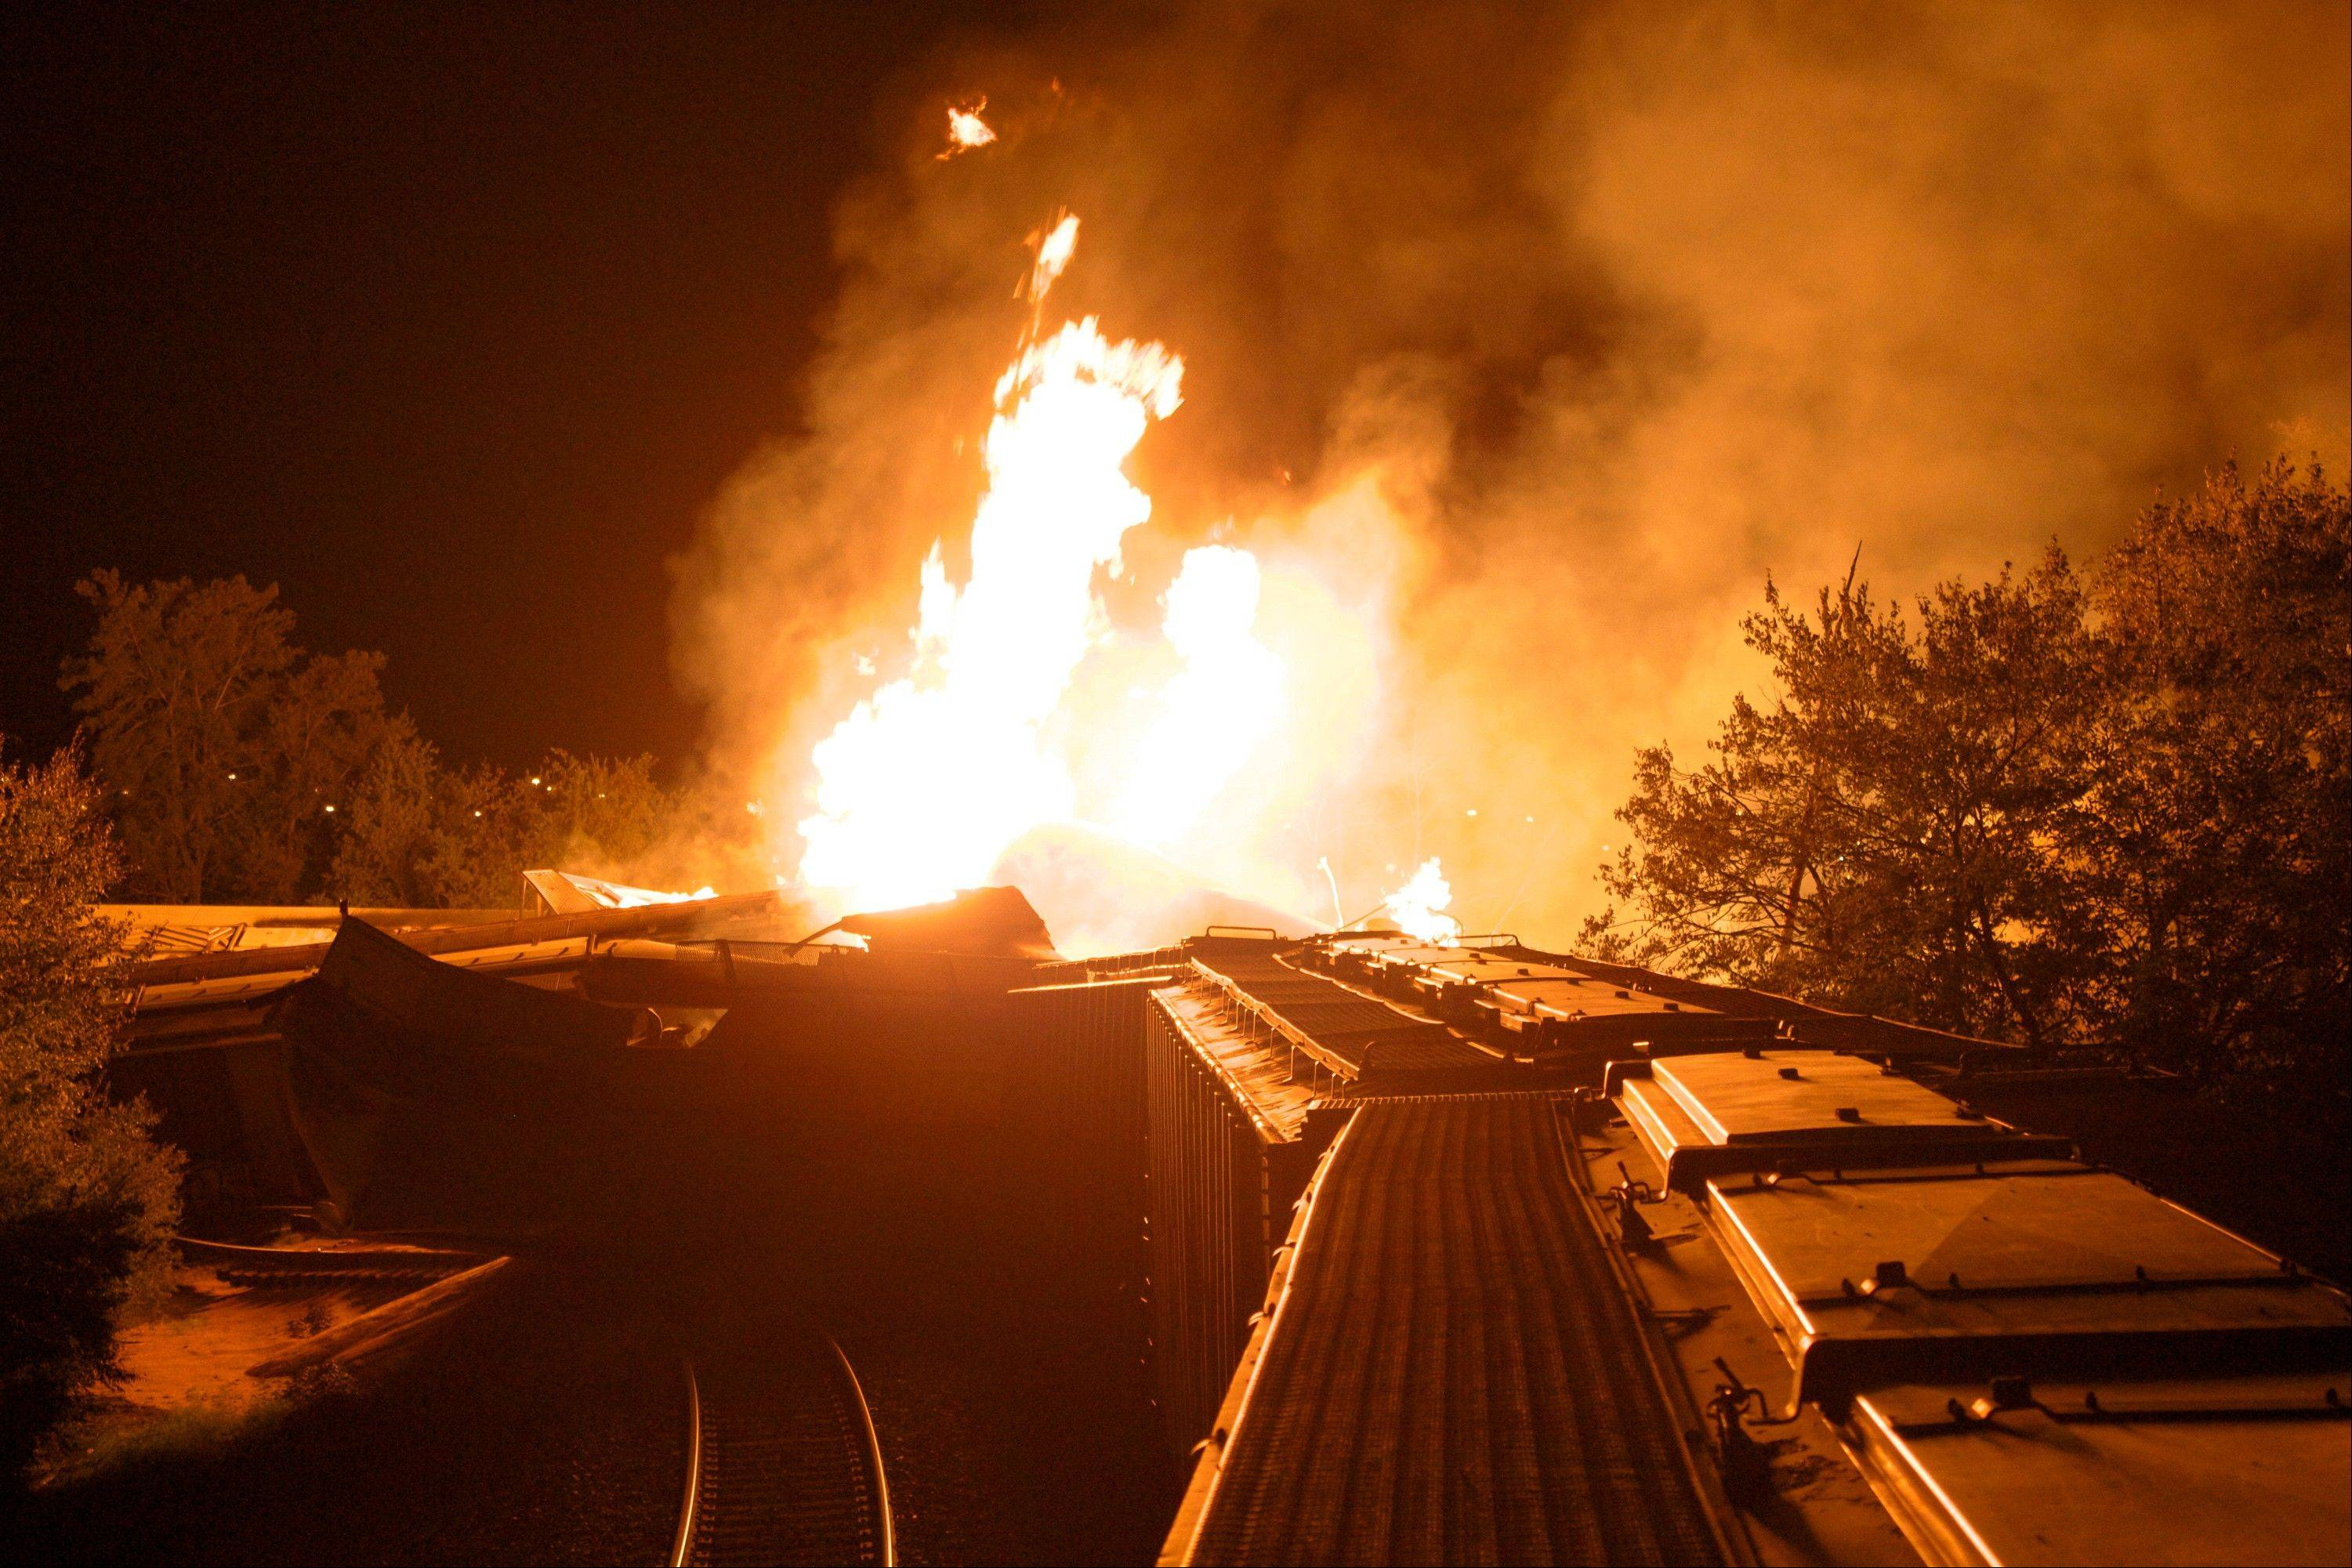 Flames rise from a derailed freight train early Wednesday in Columbus, Ohio.